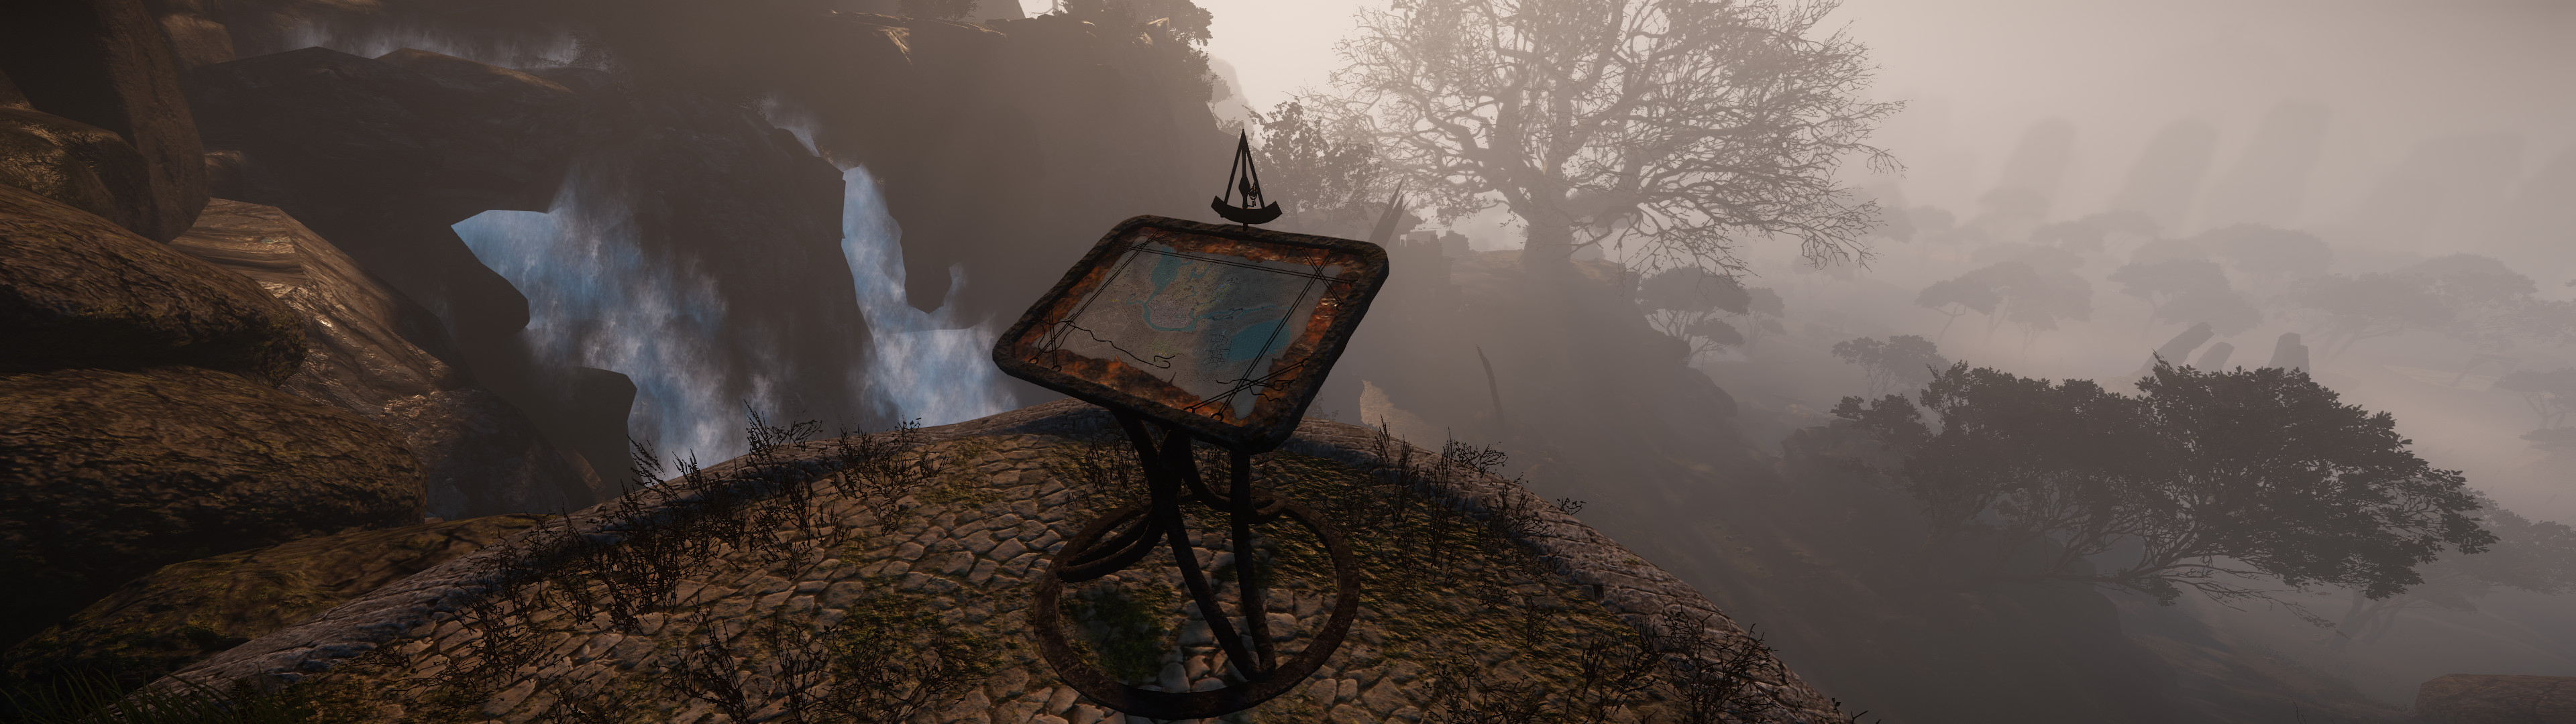 The mapholder implemented in CryEngine